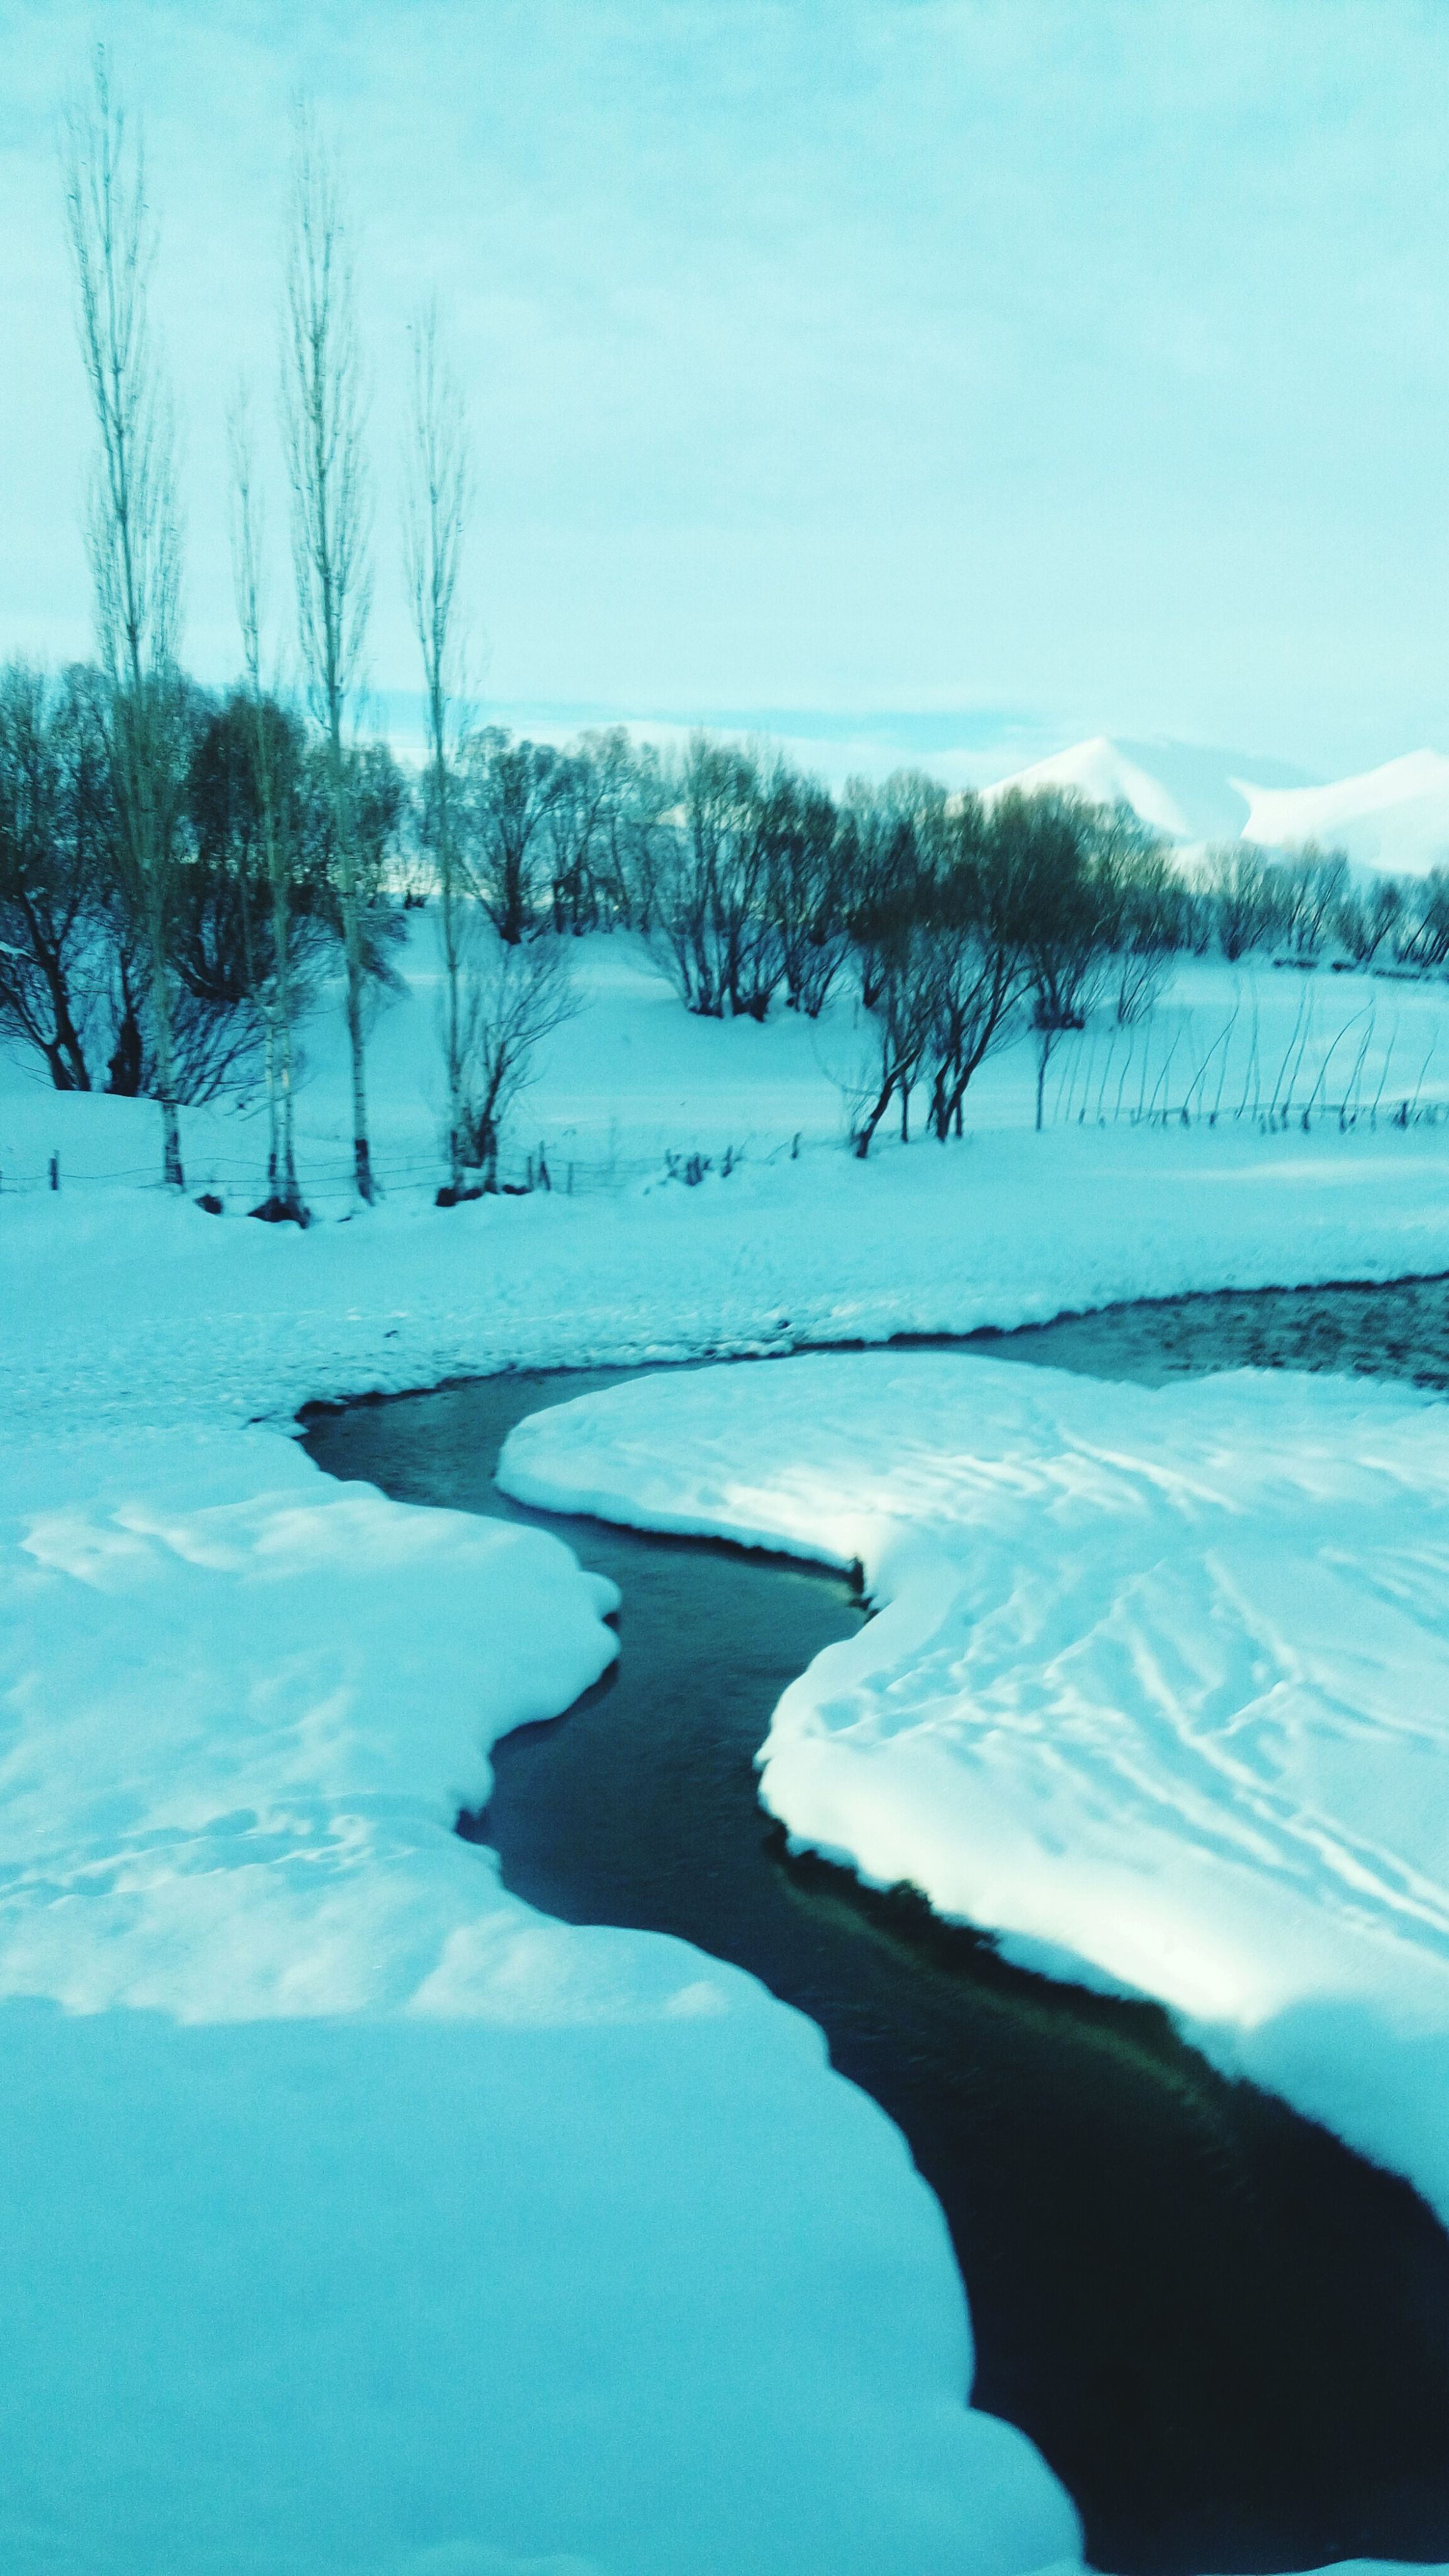 cold temperature, winter, snow, nature, beauty in nature, tranquility, tree, frozen, tranquil scene, scenics, bare tree, sky, day, outdoors, no people, ice, clear sky, landscape, frozen lake